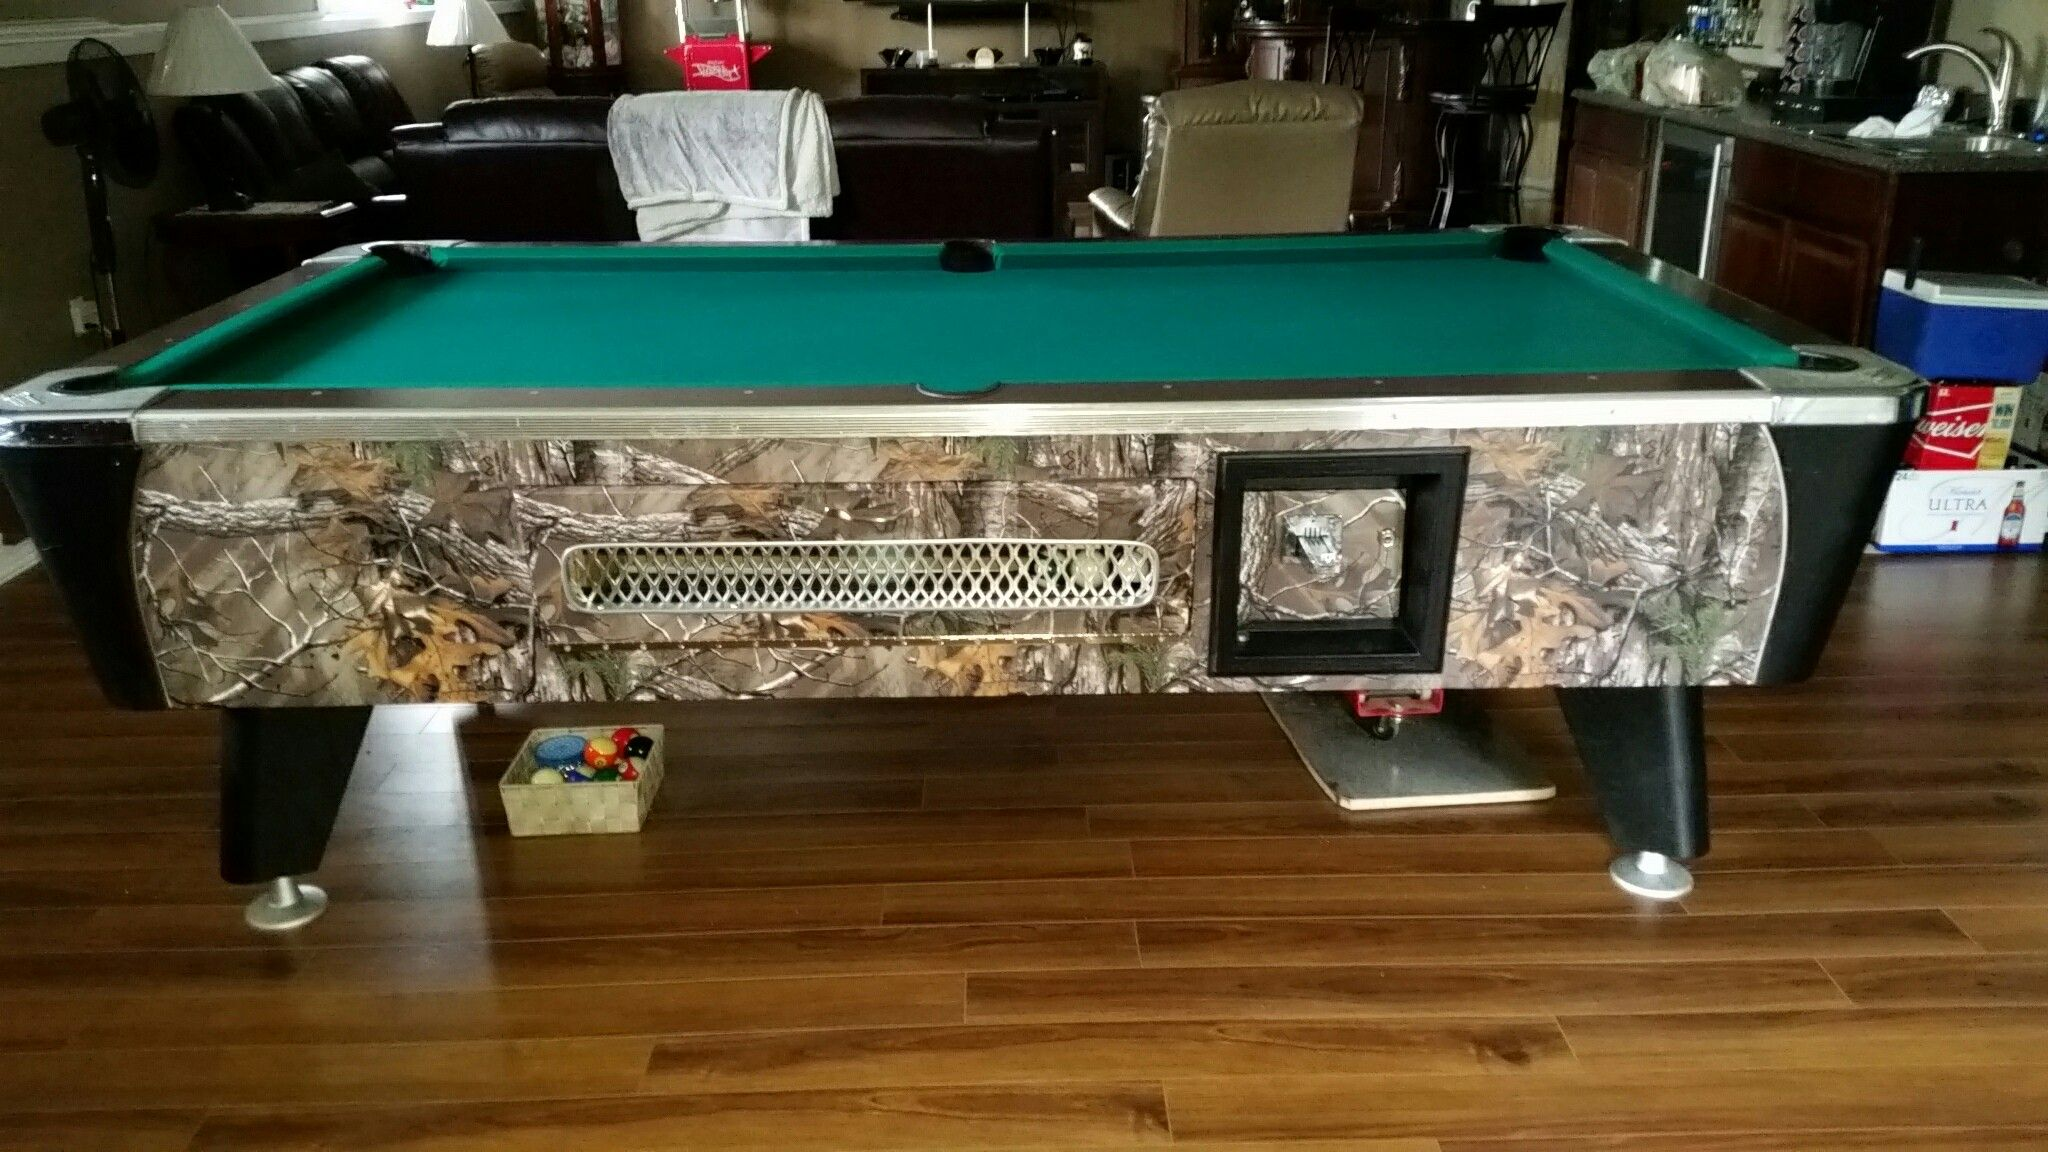 Done With Made Up Door In Place I Saved The Old Chrome From Old - Pool table retailers near me